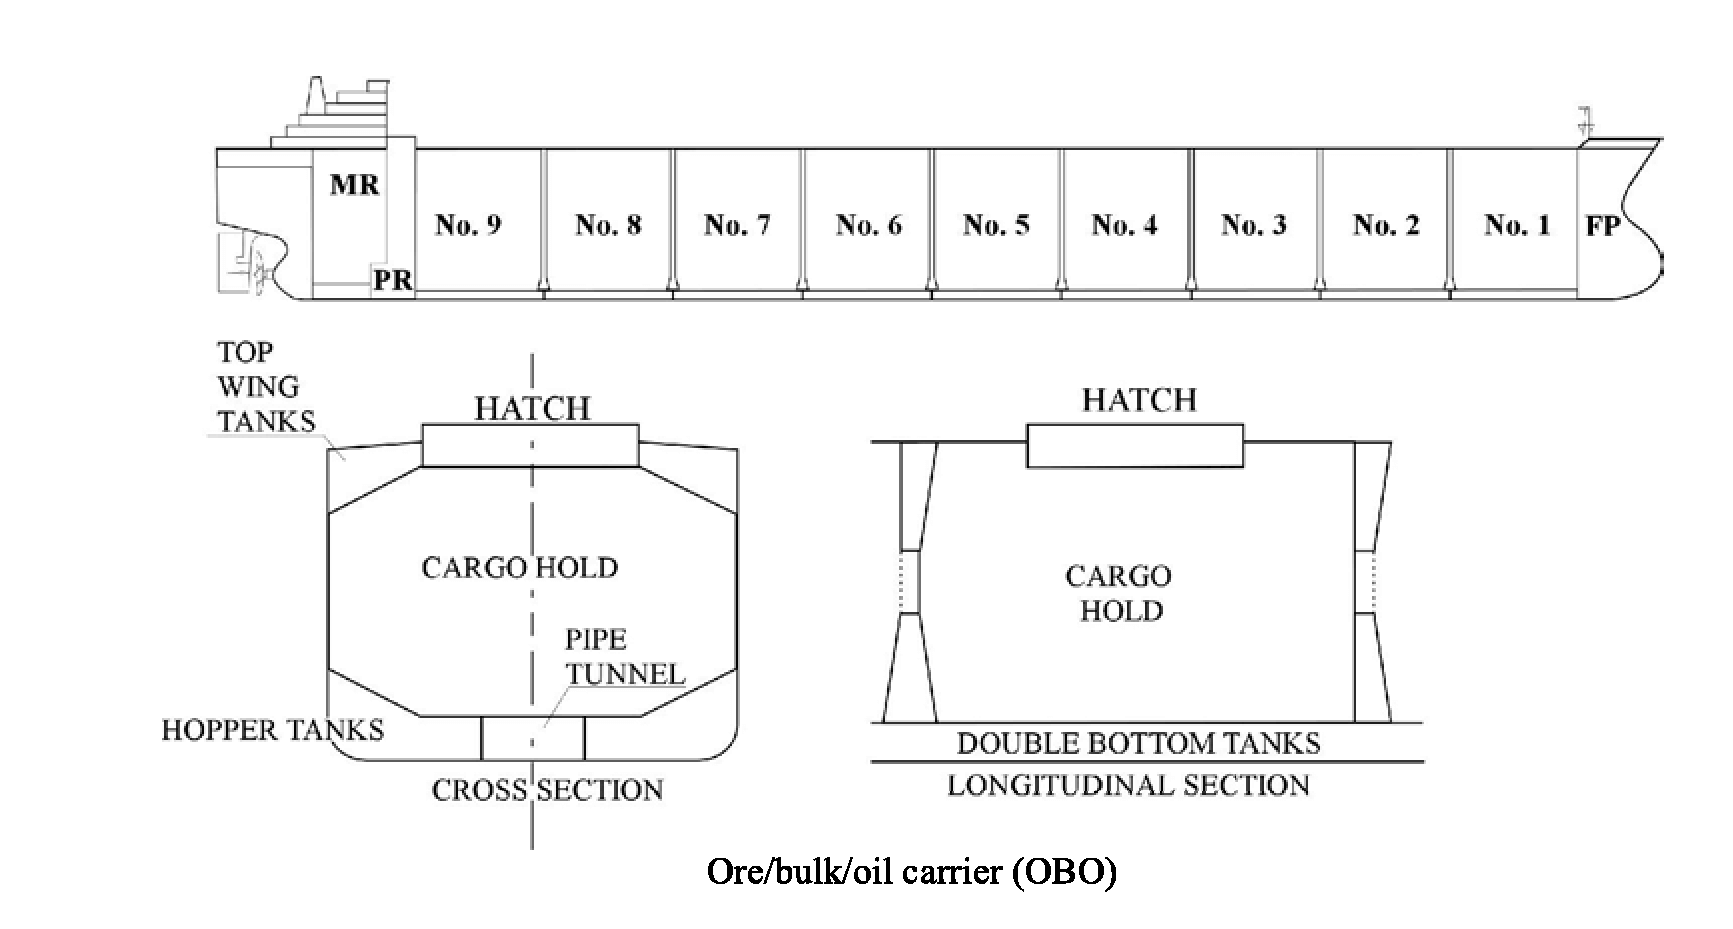 hight resolution of attention should be paid to the gas contents of wing tanks when the vessel is discharging bulk ore